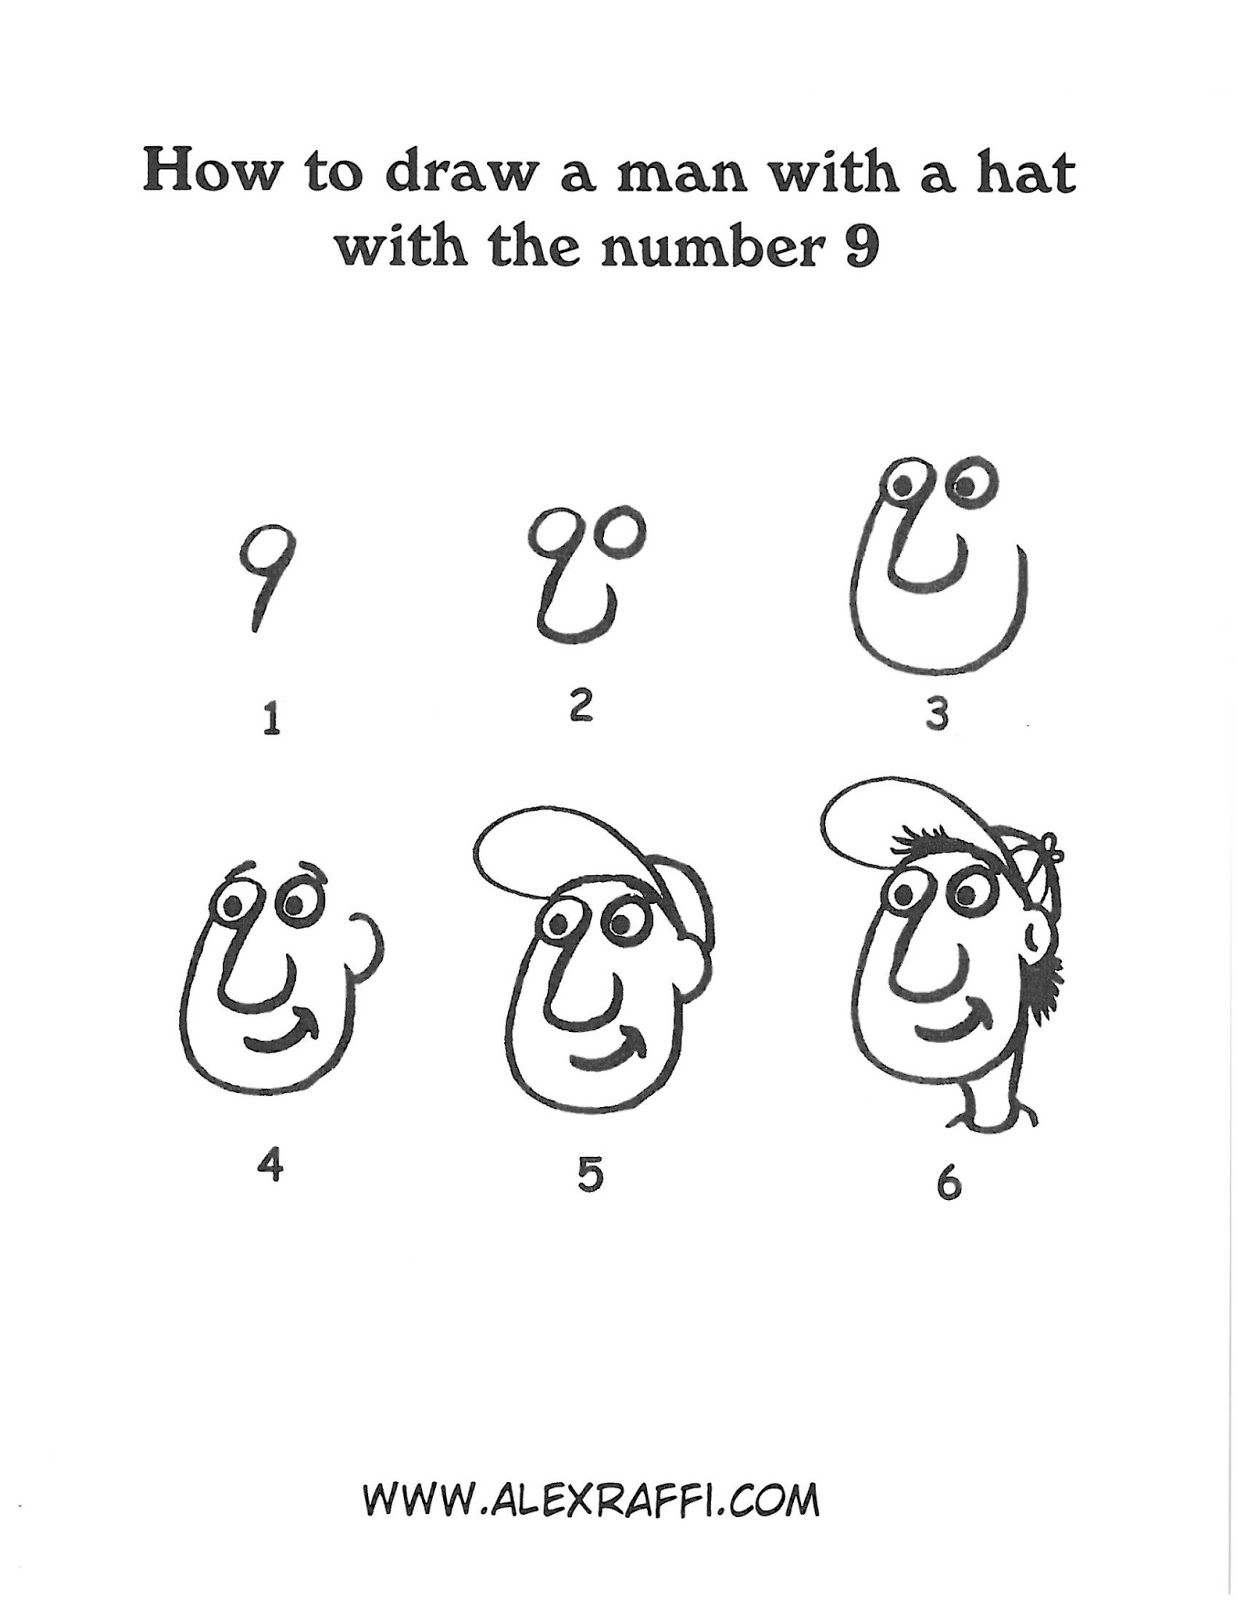 Alex Raffi Blog Drawing With Numbers